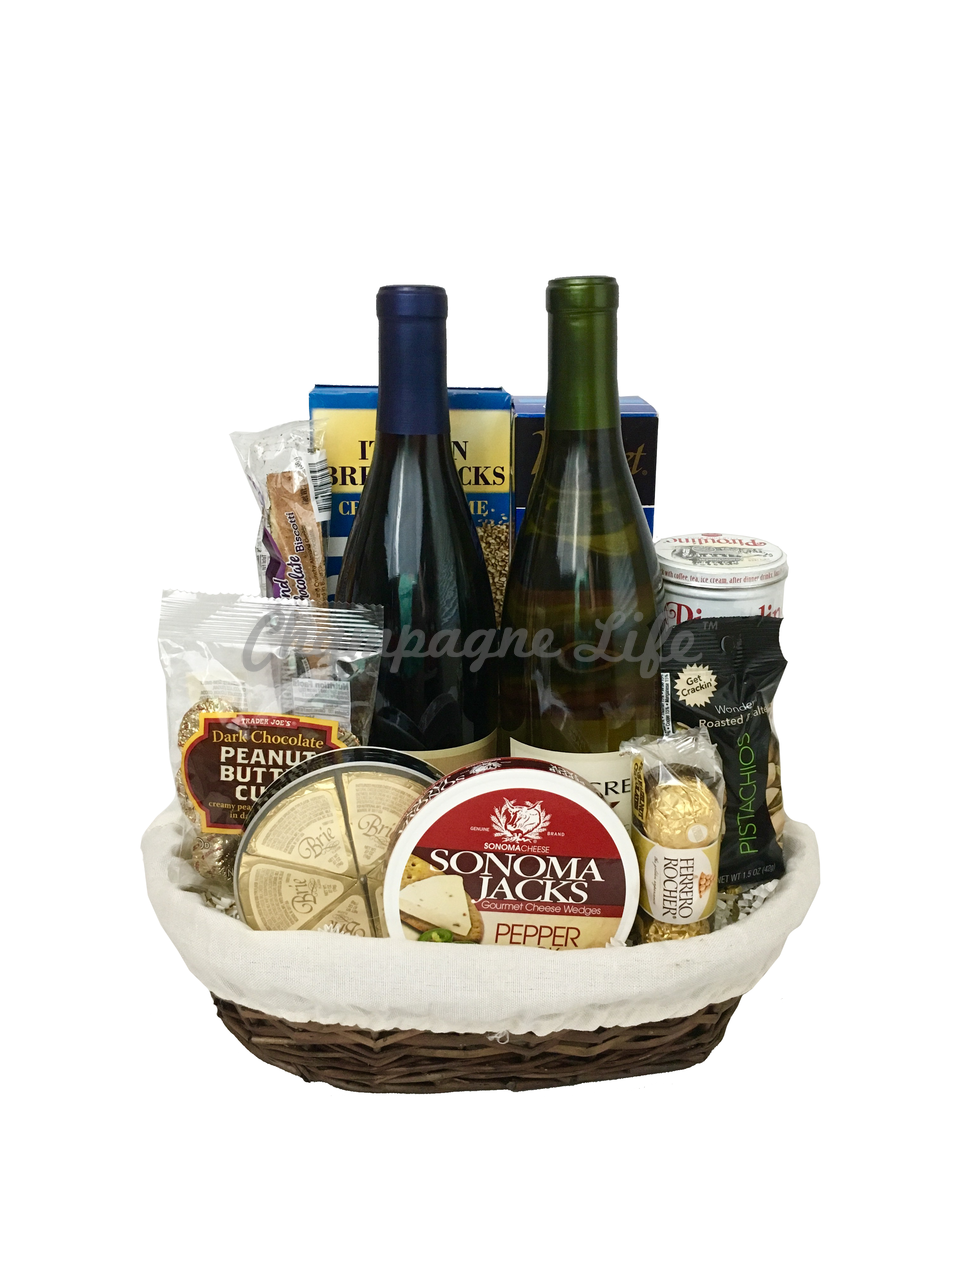 Red and White Wine Gift Basket  sc 1 st  Ch&agne Life Gift Baskets & Red and White Wine Gift Basket - Champagne Life Gift Baskets